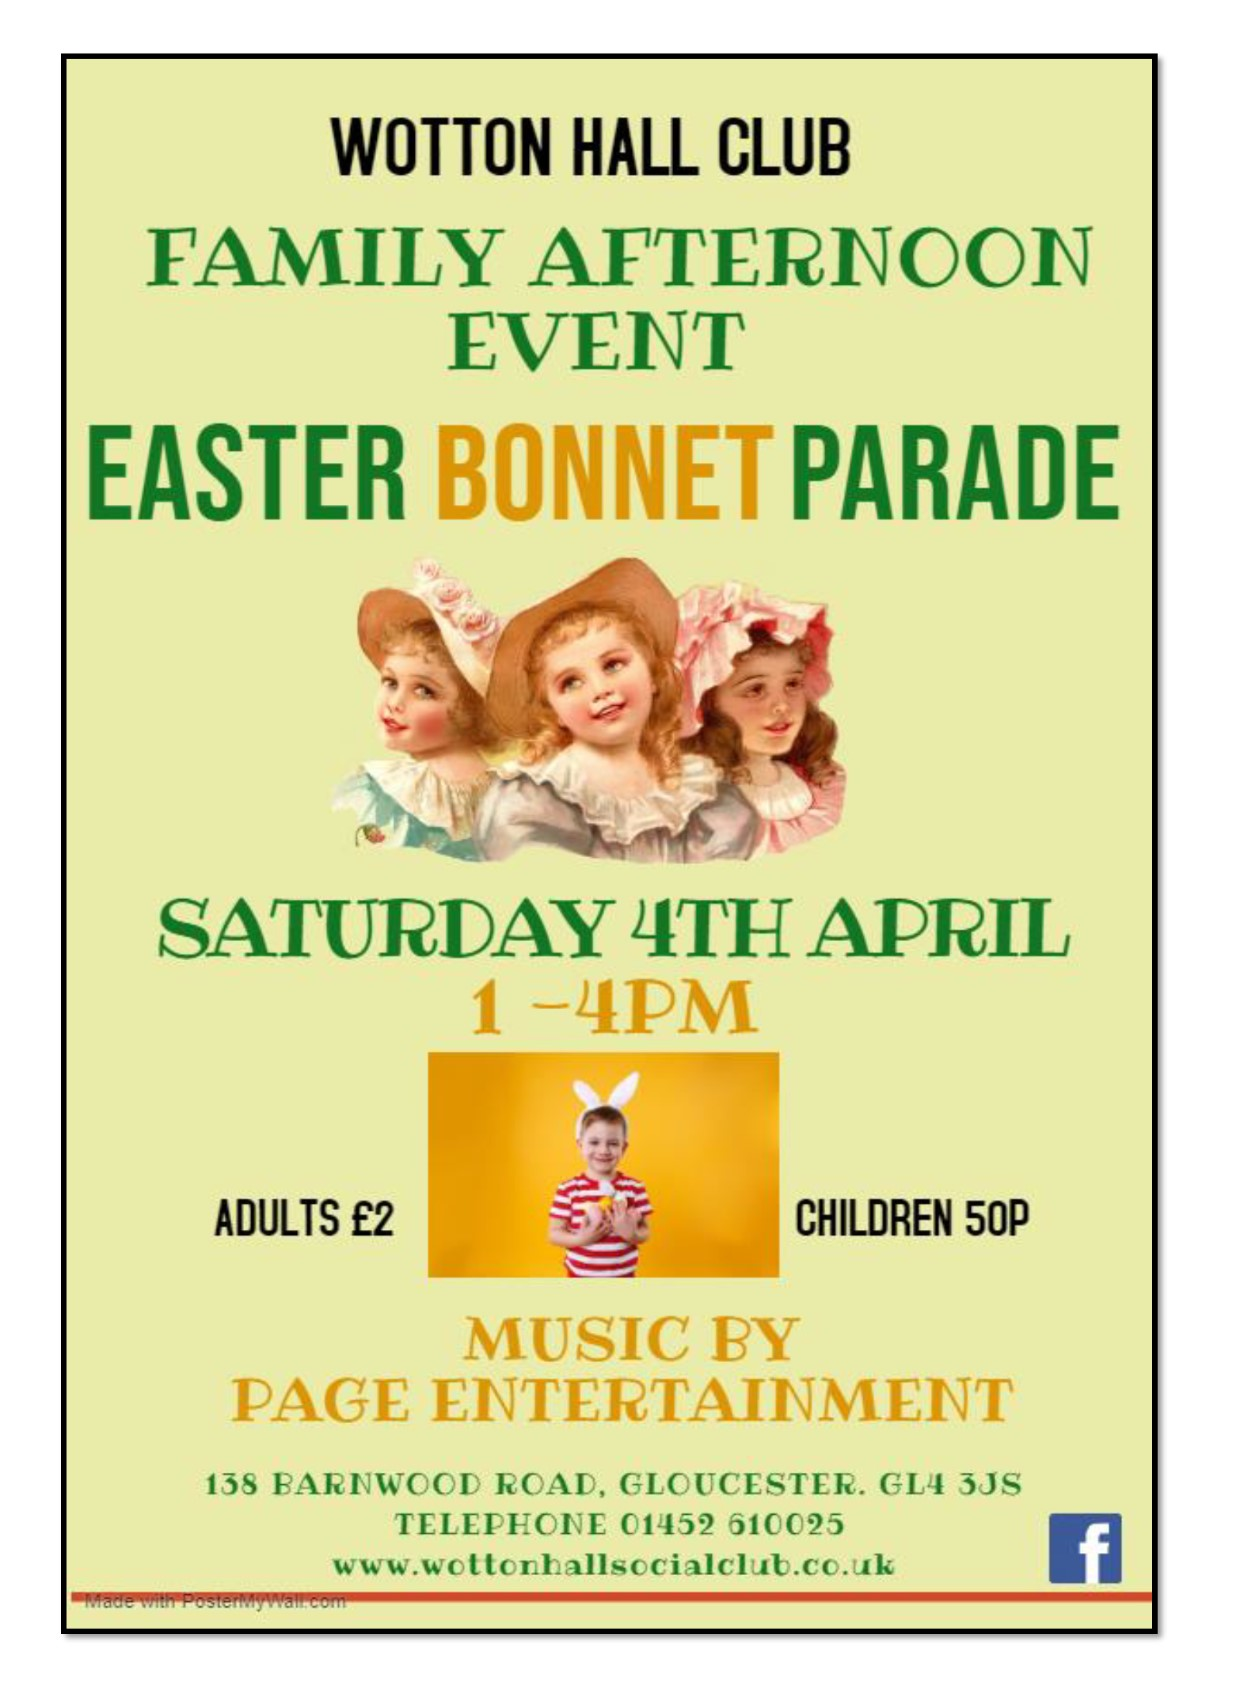 Easter Bonnet Parade 4th April Made with PosterMyWall online